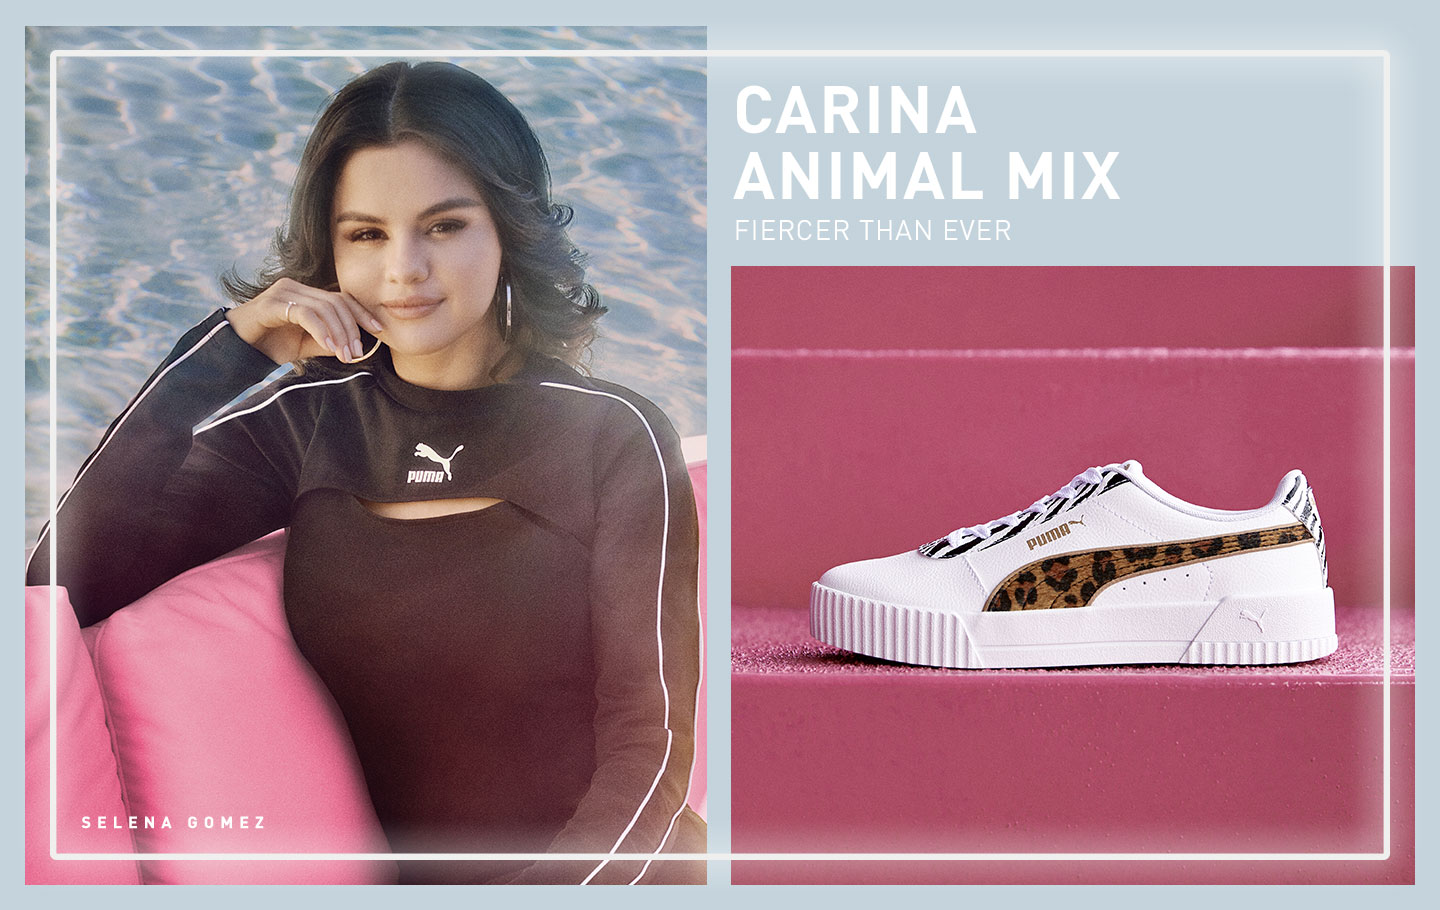 Selena Gomez wears Carina Animal Mix.